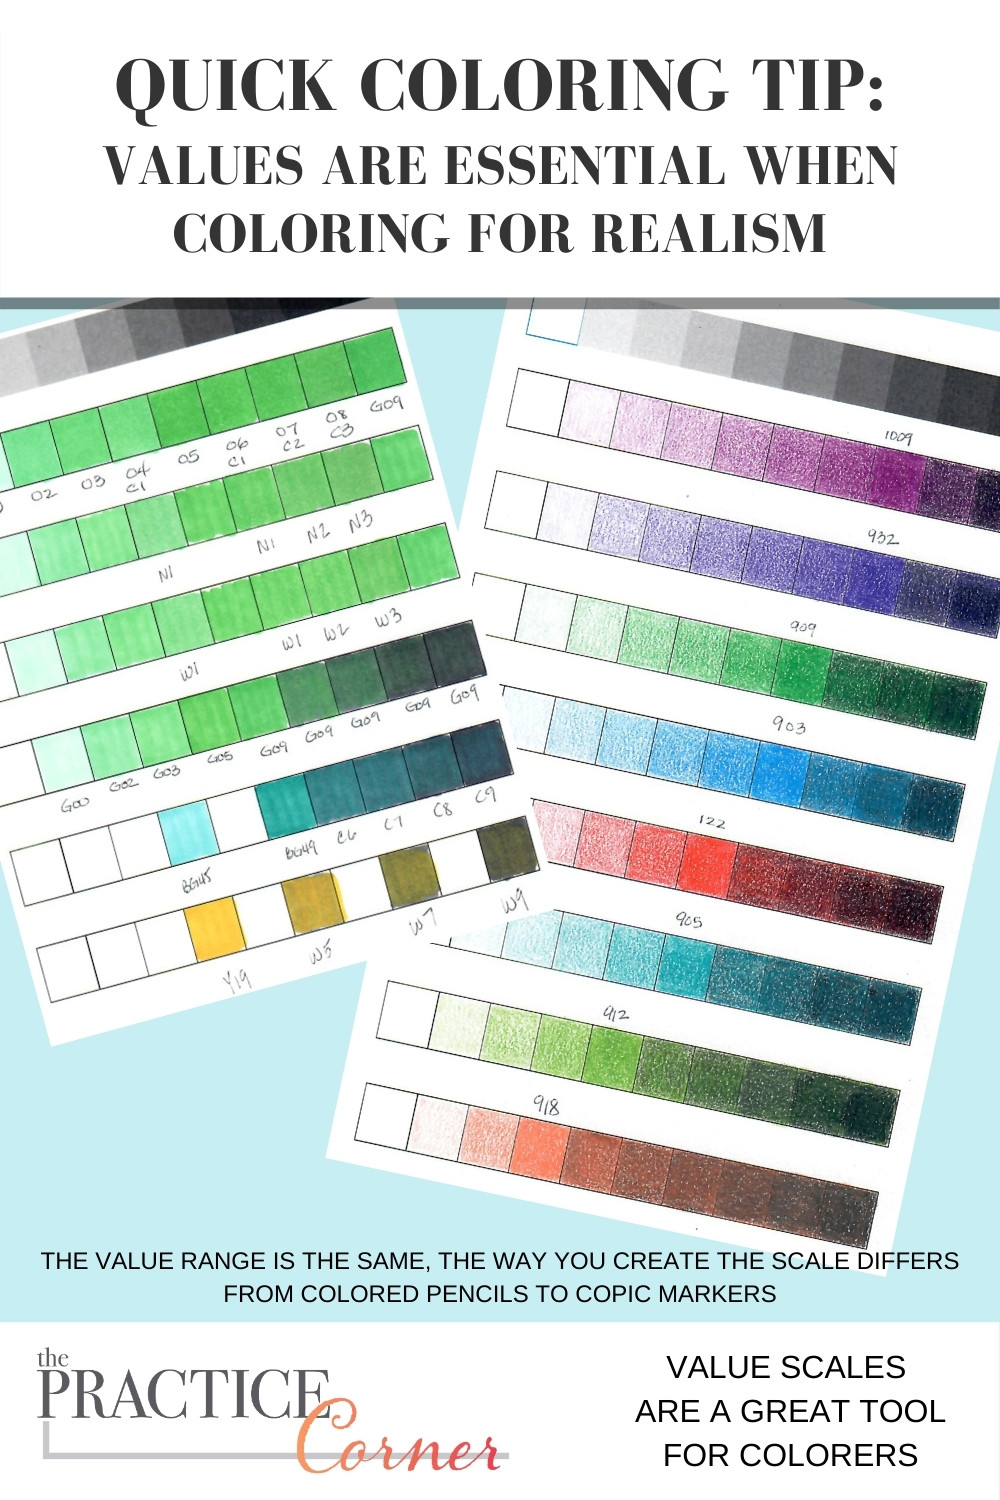 The importance of value scales to your coloring.   The Practice Corner   How to improve your coloring   #coloredpencilpractice #copicmarkerpractice #valuescales #coloringtips